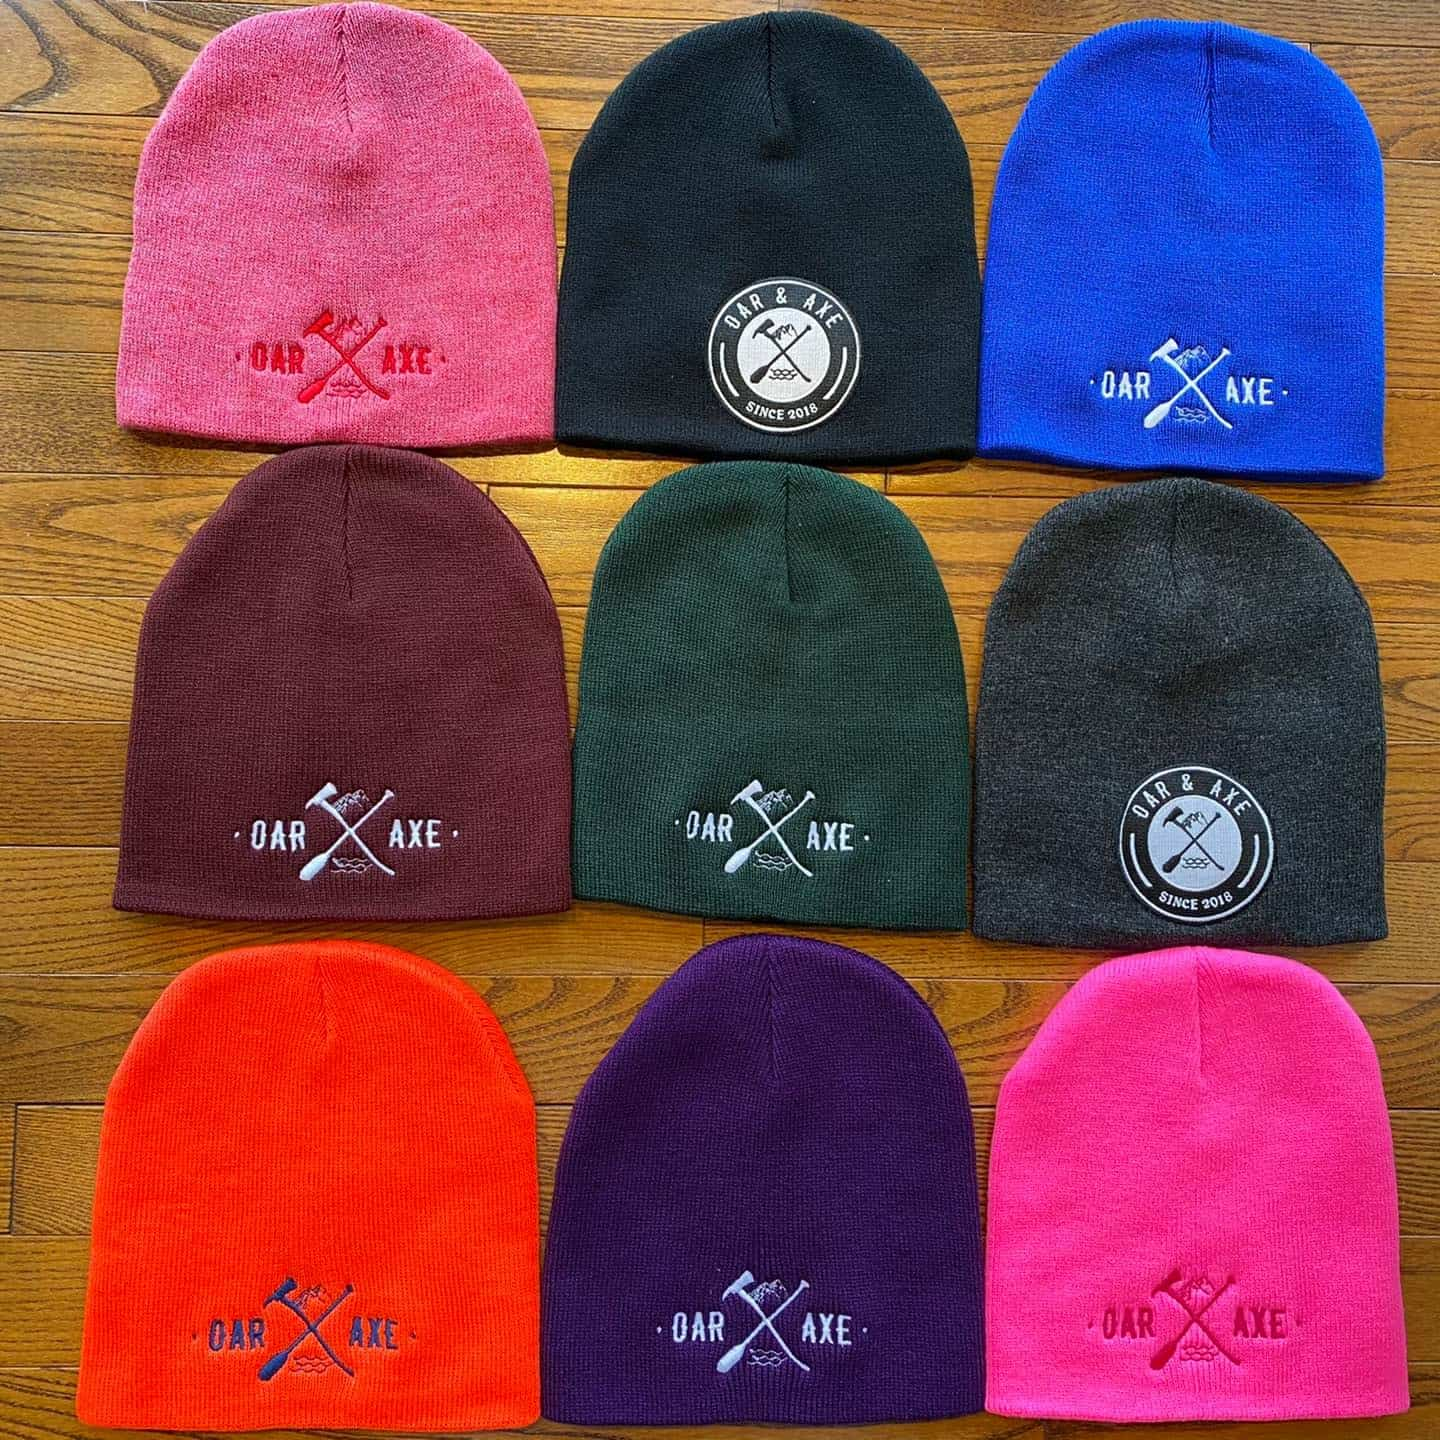 Oar & Axe beanies at Lemonceillo